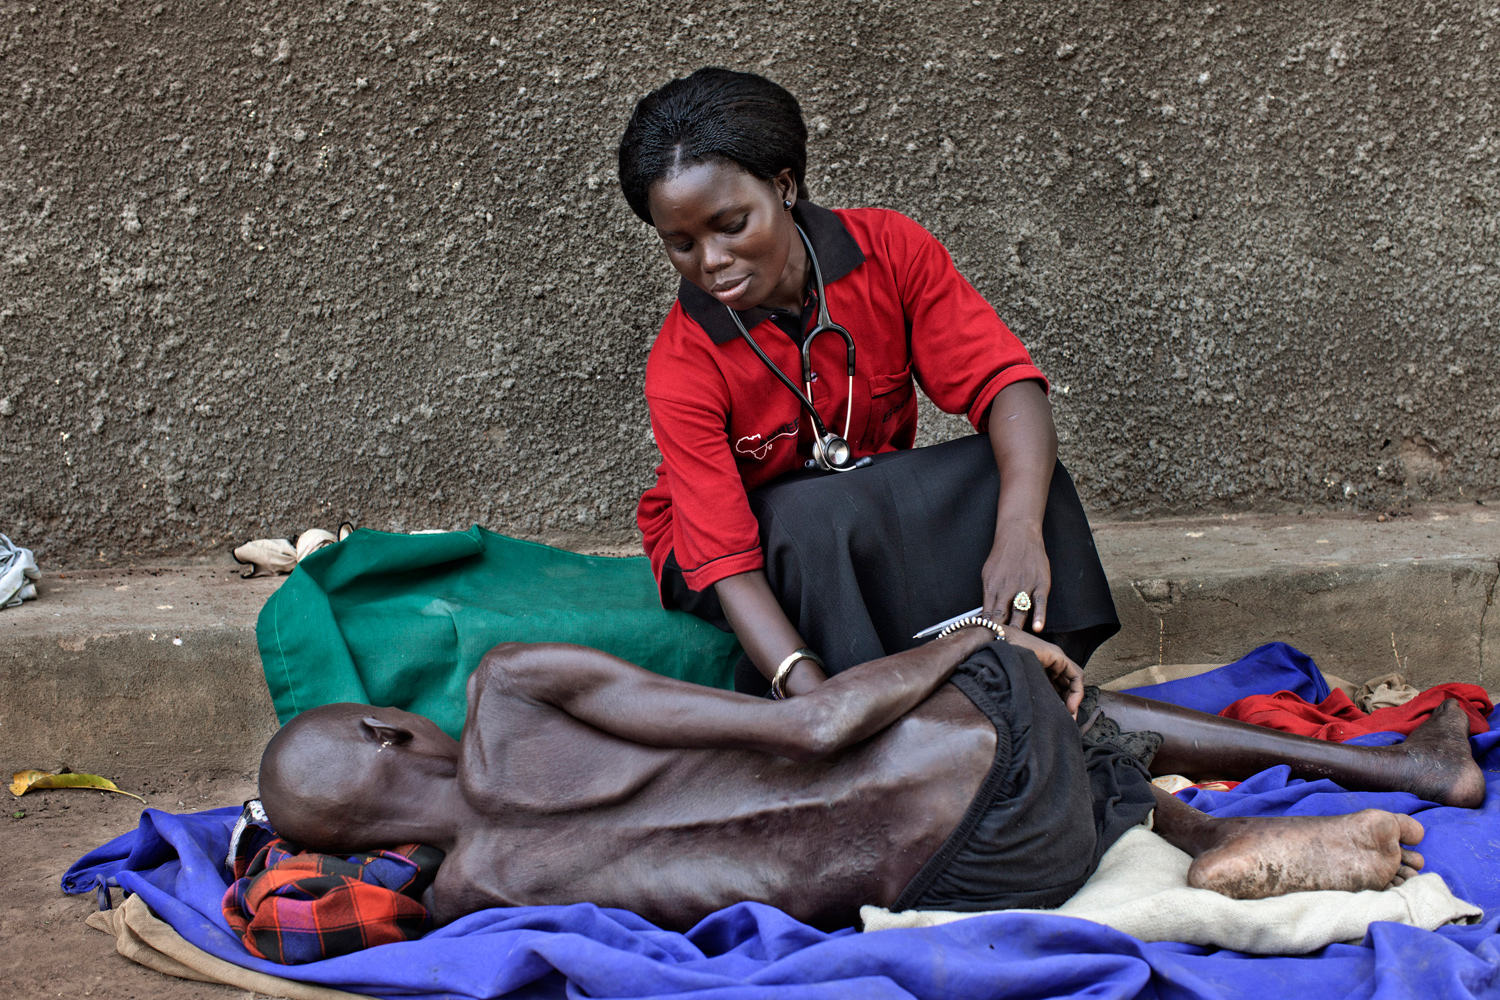 February 9, 2011. AMREF (African Medical and Research Foundation) officer Janet Mandera, 25-years-old, from Magui County, treats a woman that suffers from malnutrition at a center in Southern Sudan.